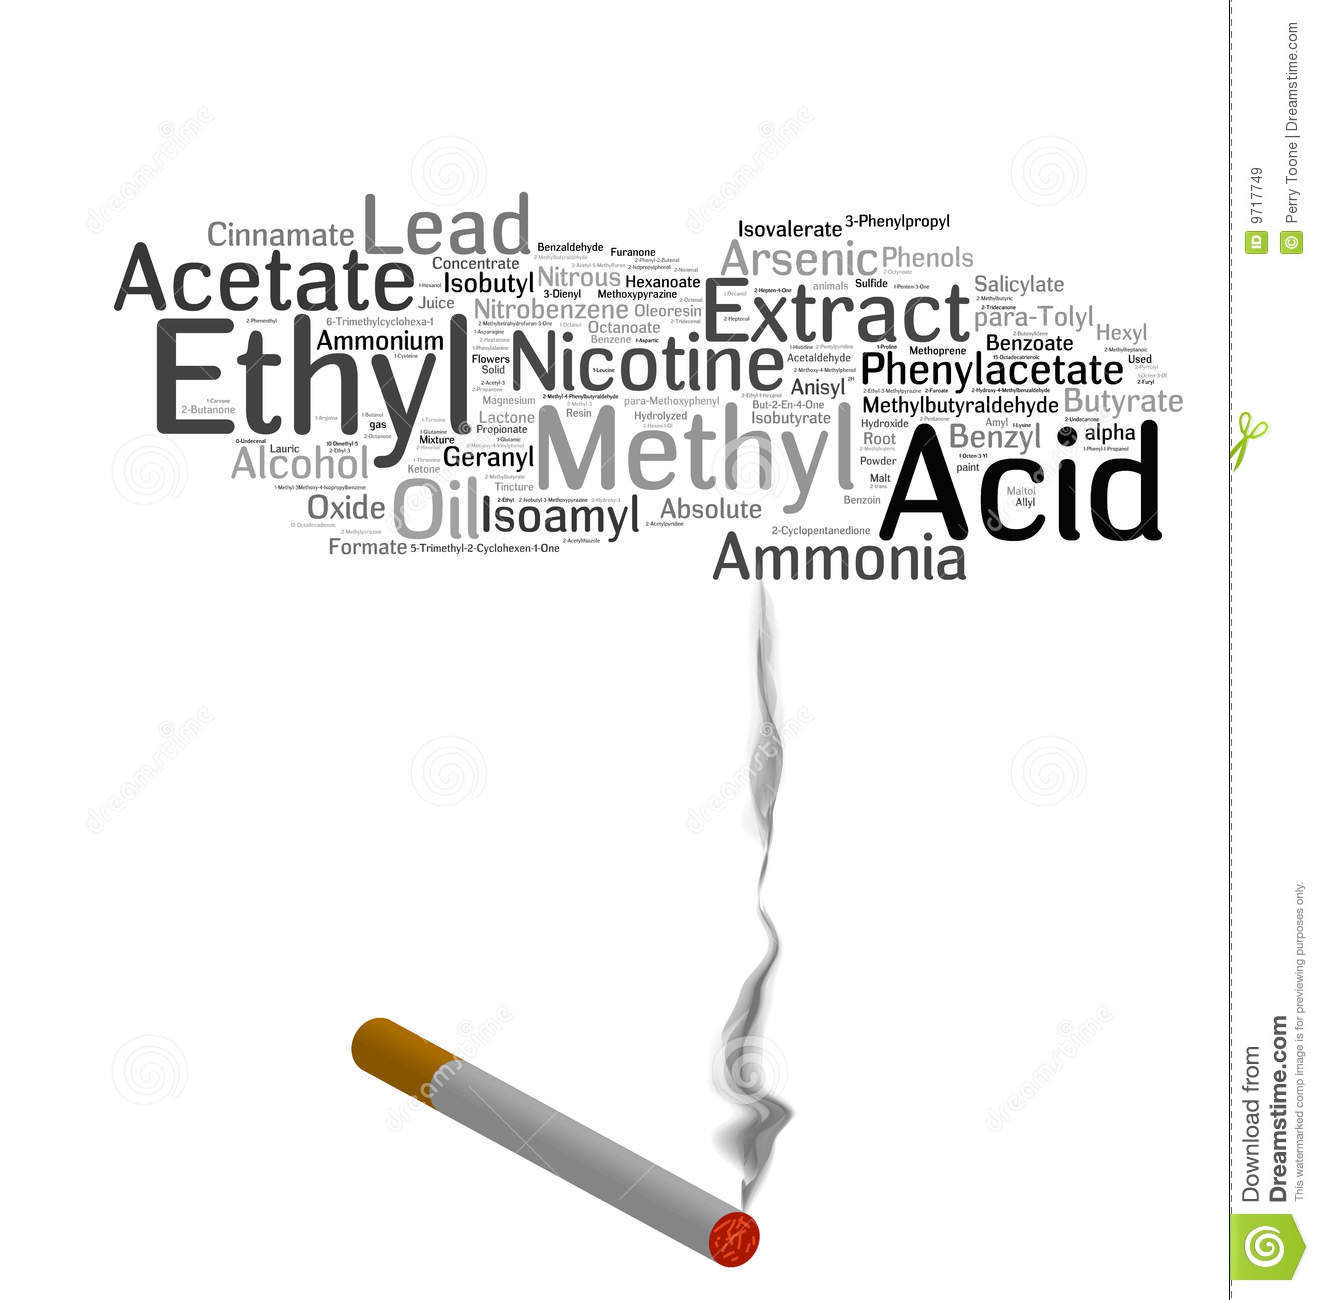 Cigarette Smoking Chemicals Royalty Free Stock Images - Image: 9717749